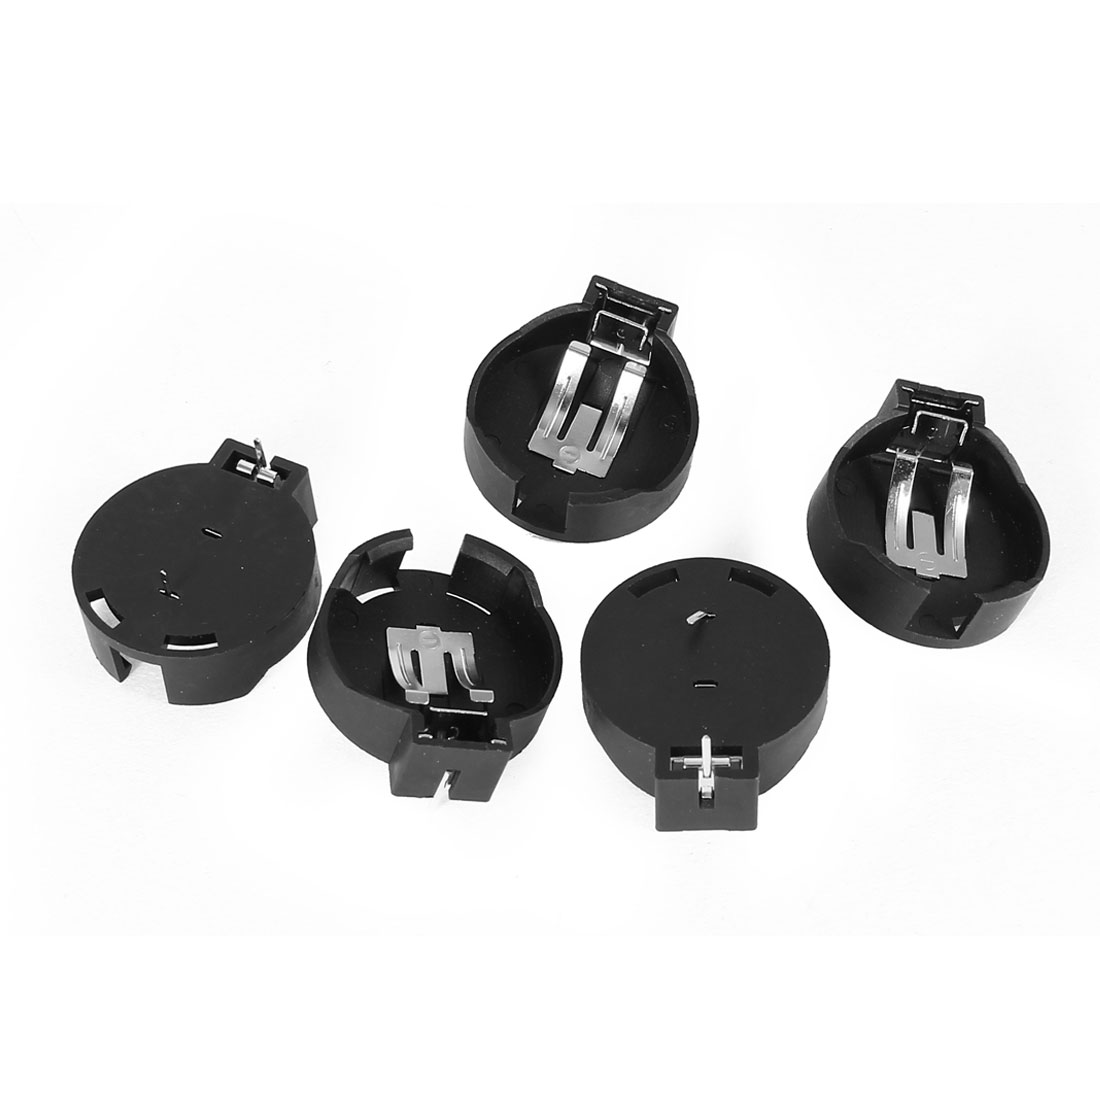 5 Pcs 3V CR2450/2430 Coin Cell Button Battery Holder Socket Black